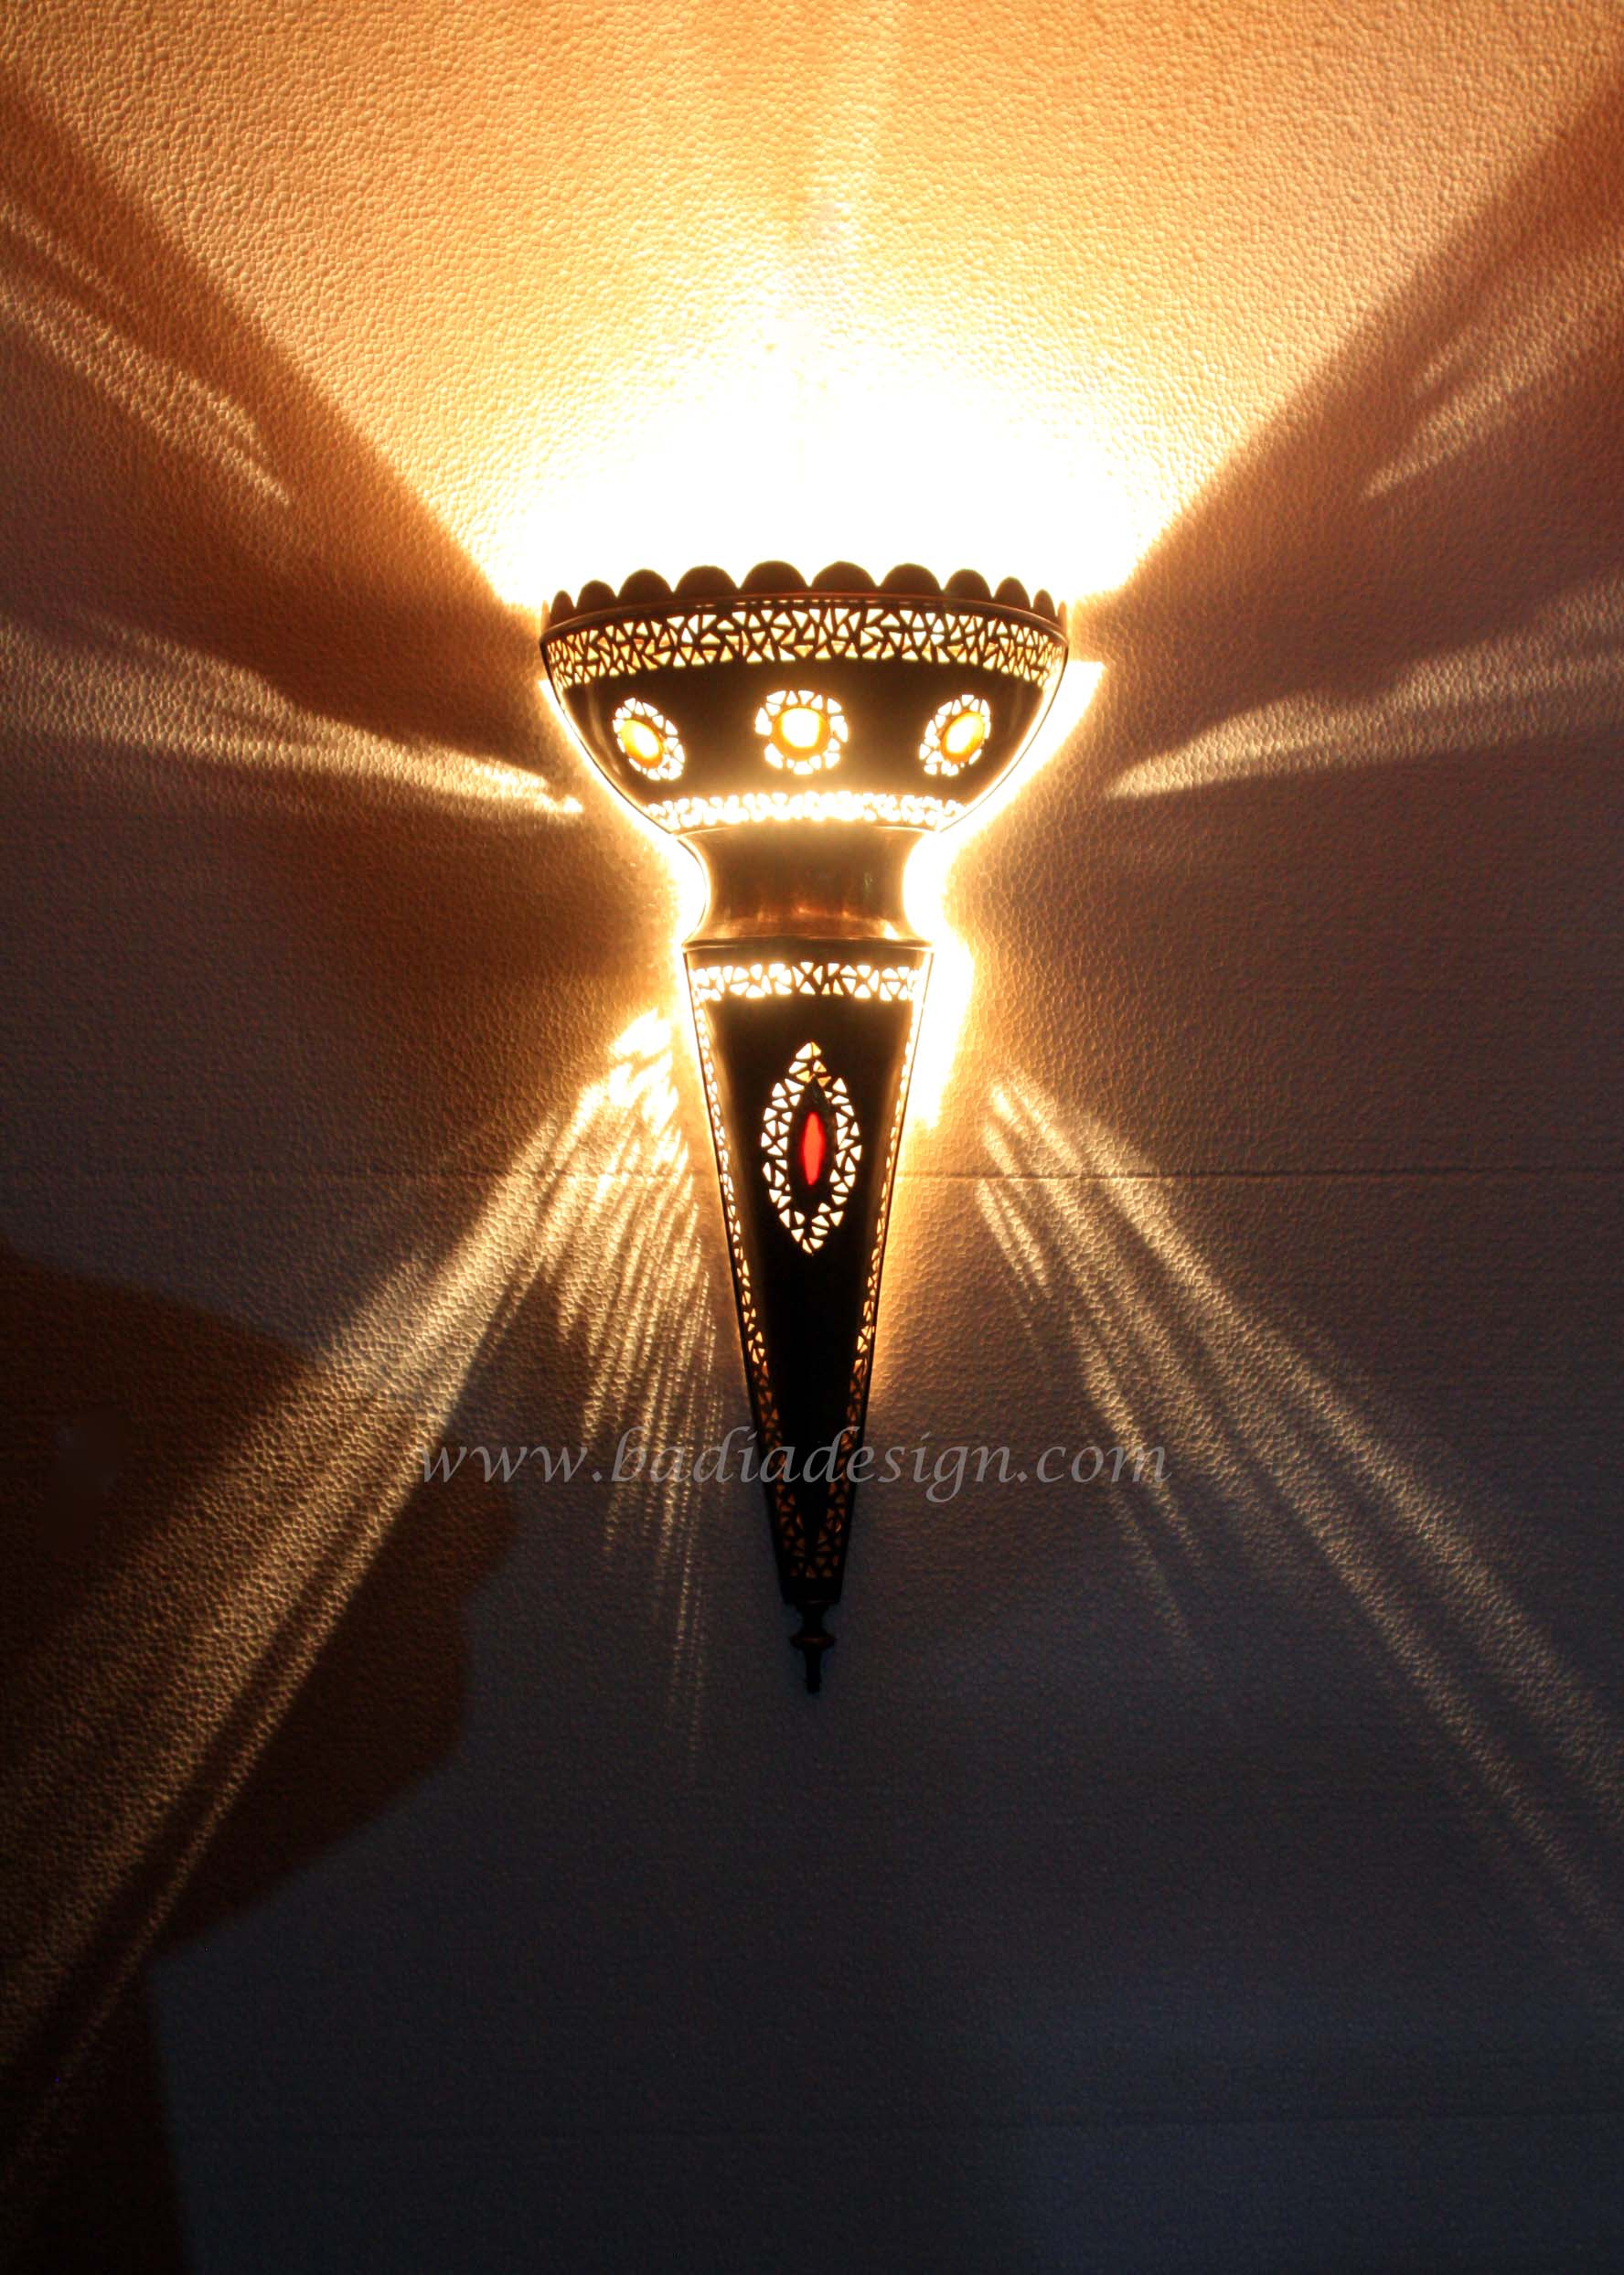 moroccan-lighting-jacksonville-florida.jpg